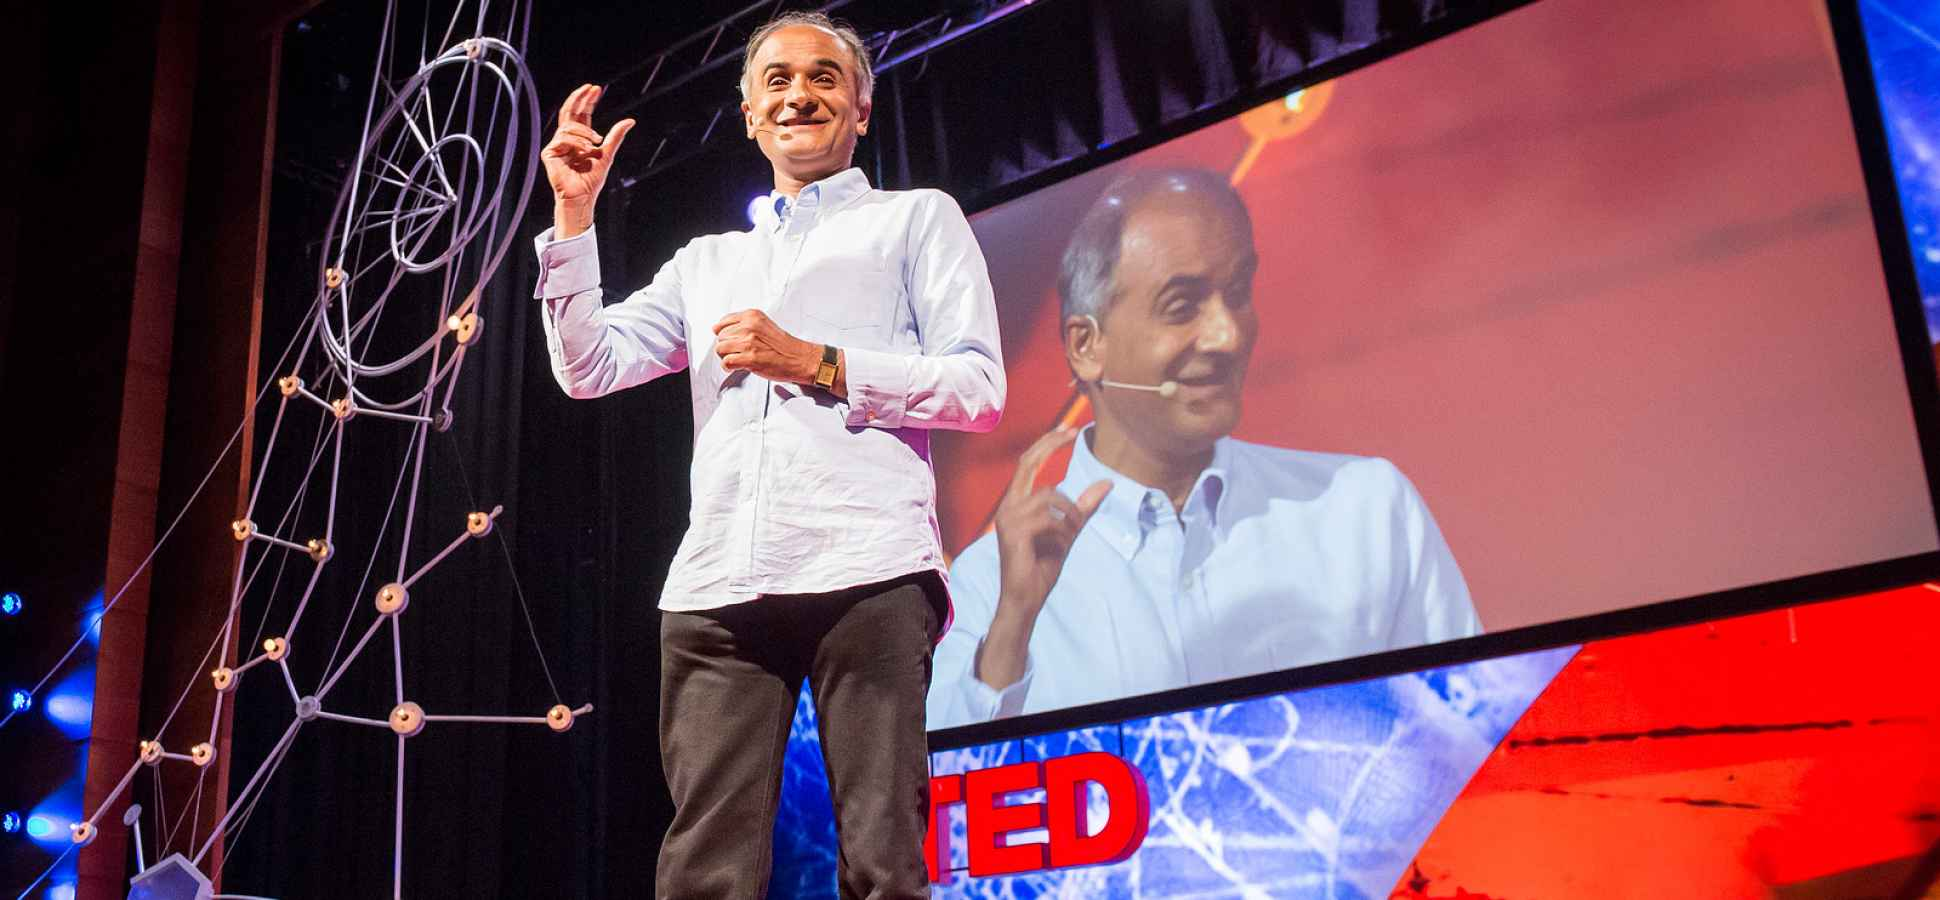 4 Lessons From TED Talks on How to Find Inner Calm and Happiness